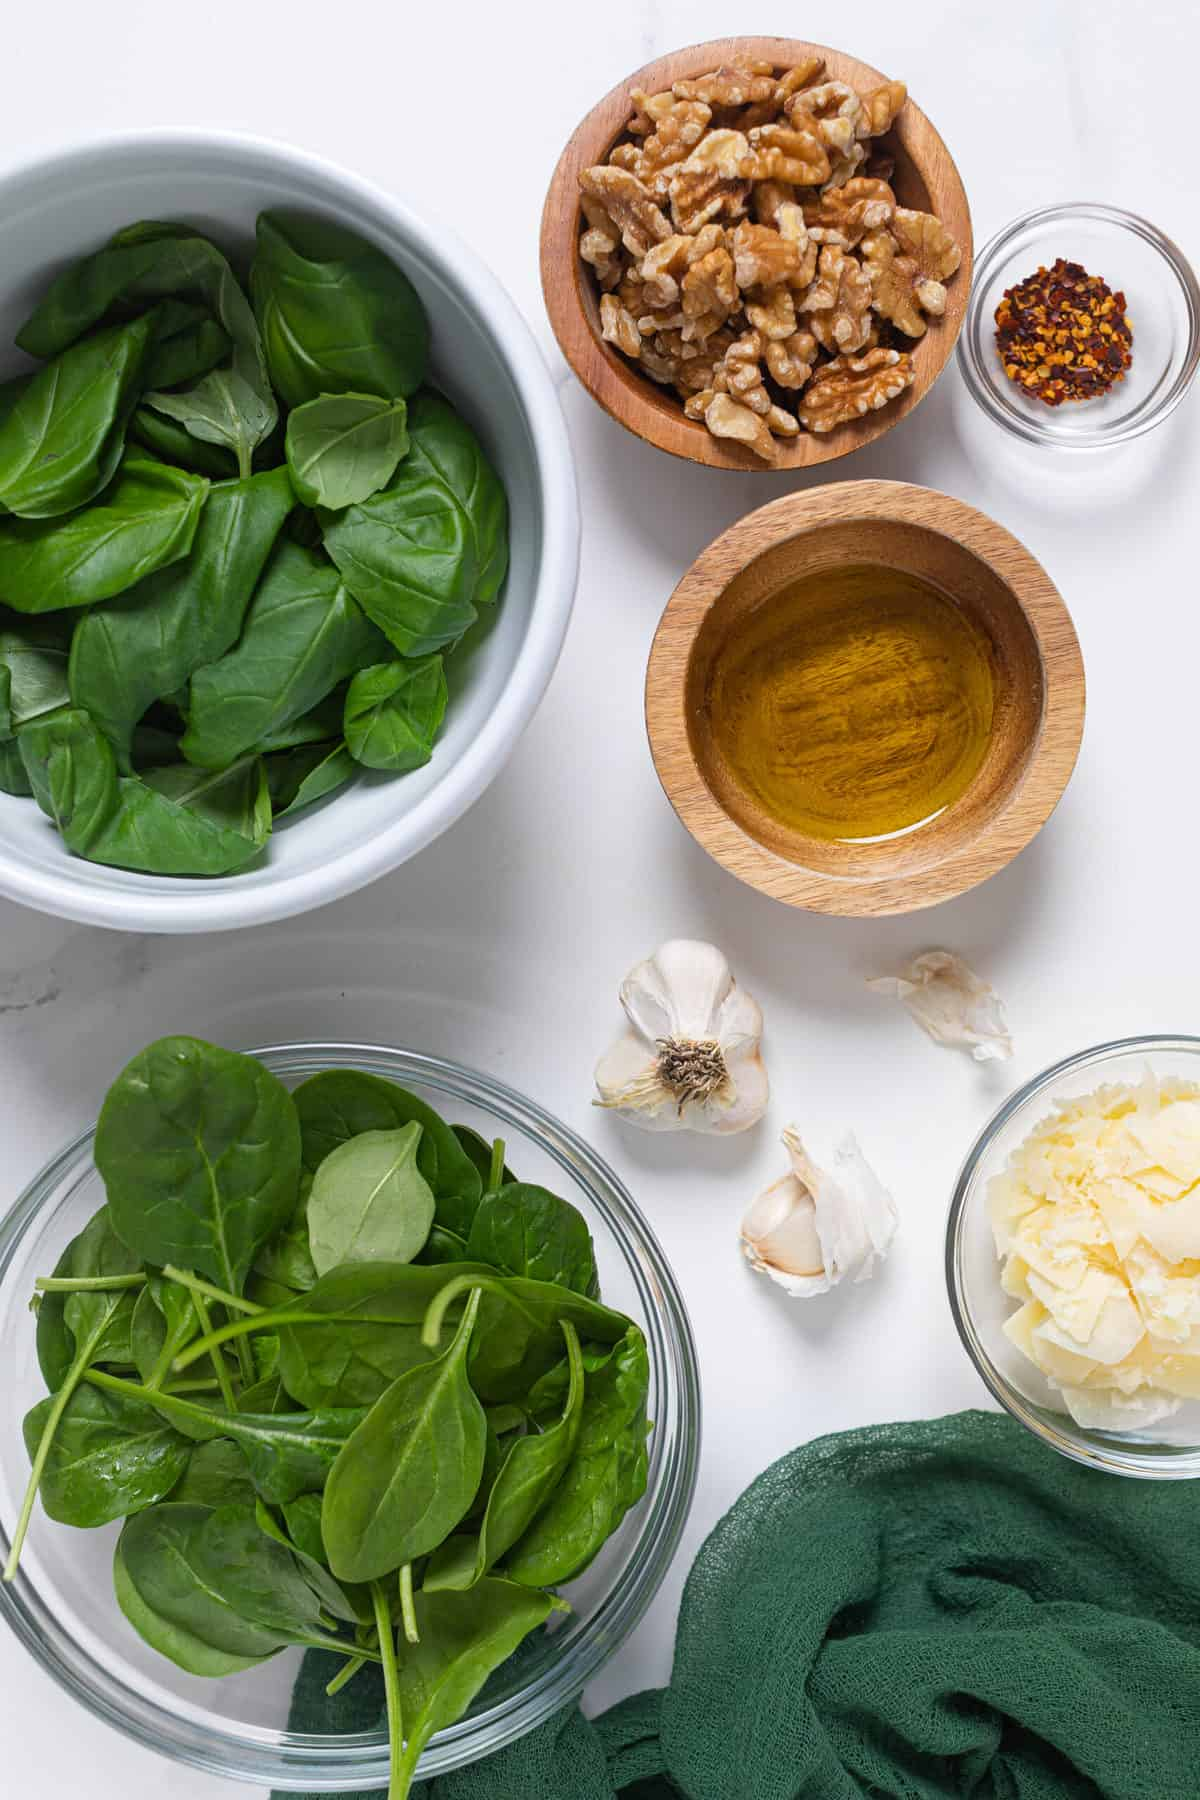 bowls of raw spinach, basil, walnuts, olive oil, garlic cloves and parmesan cheese